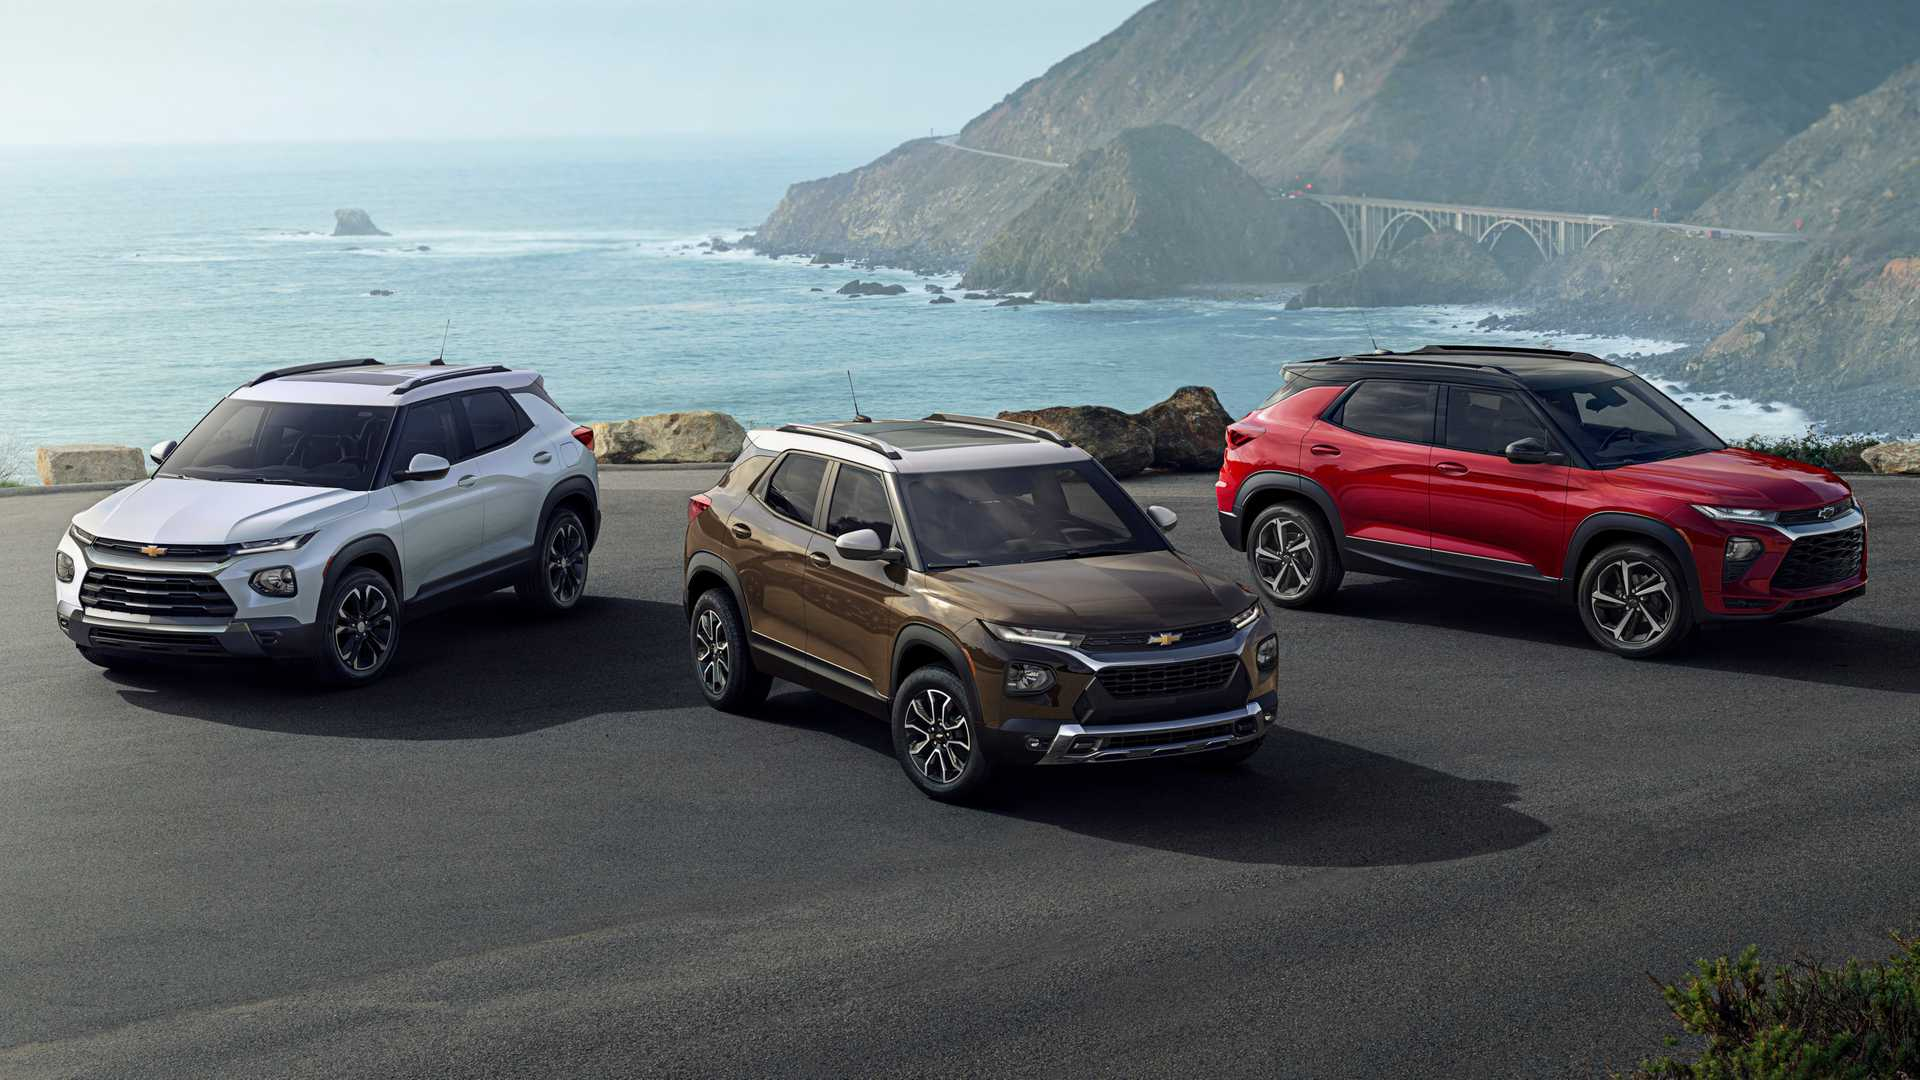 2021 Chevy Trailblazer Arrives At Dealers In Q1 2020 At 2021 Chevy Blazer Used, Near Me, Awd